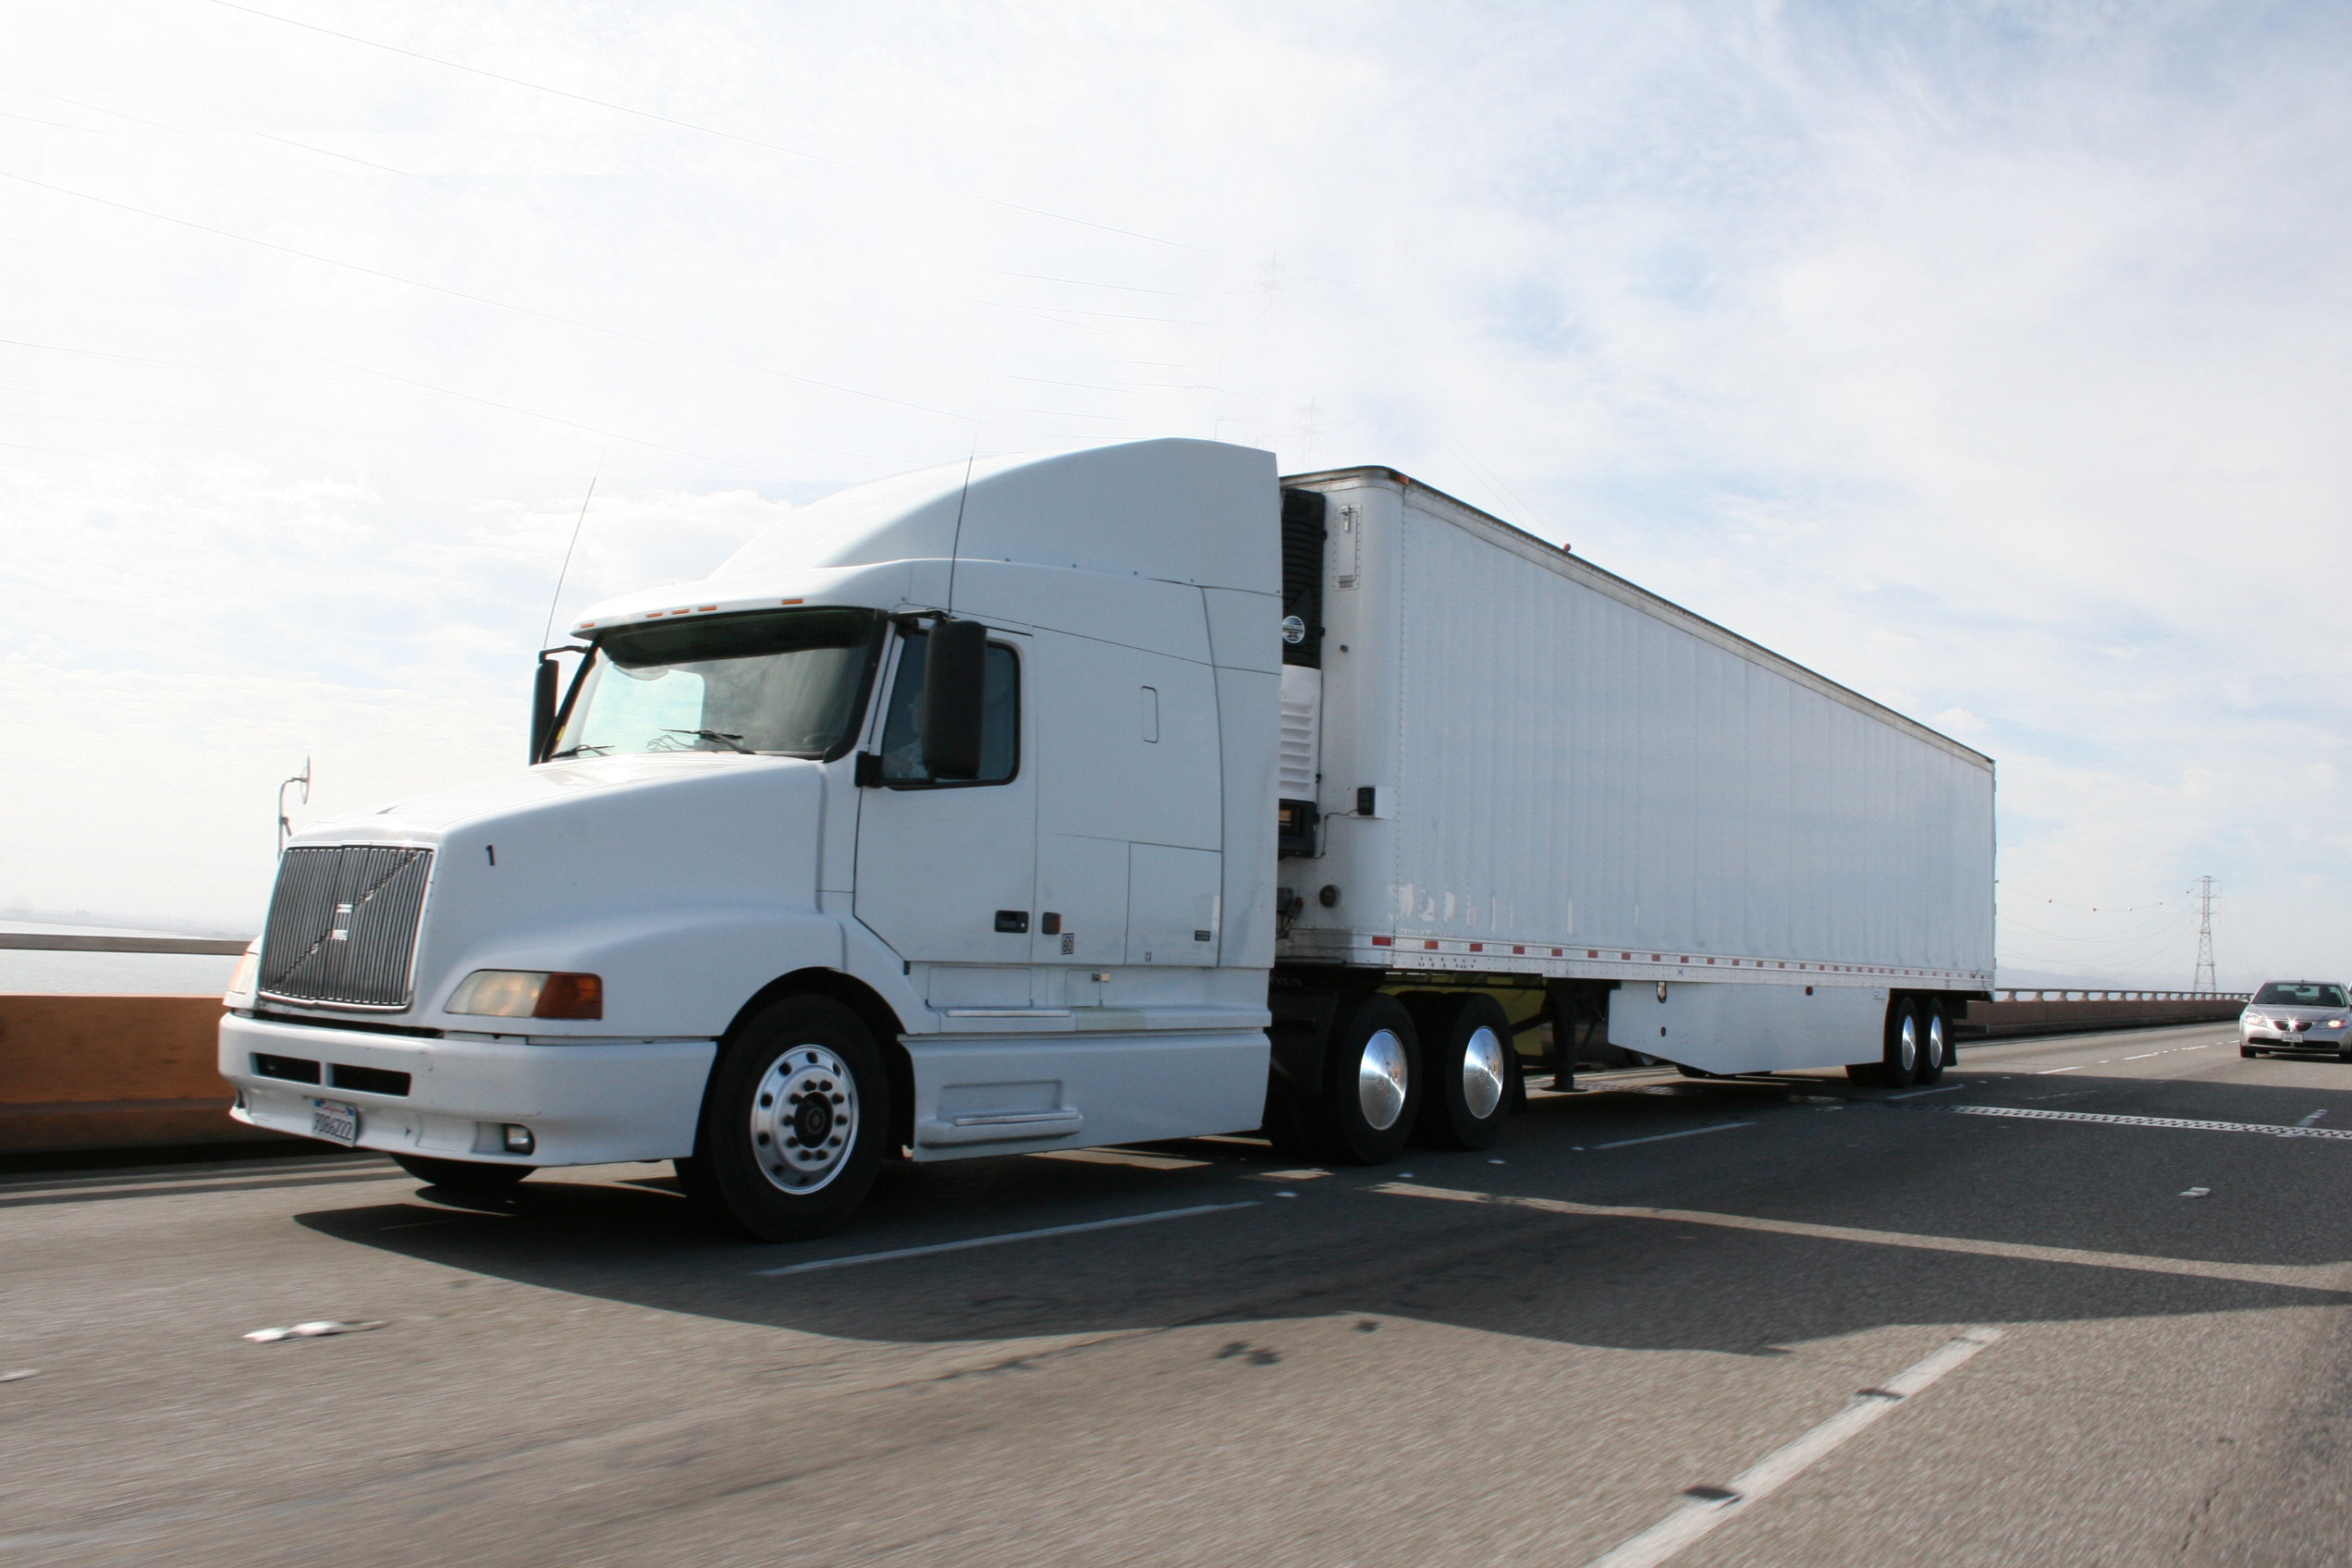 How Much Do Truck Drivers Make Salary Map besides The Duel Truck 10 Years Later also Truck And Trailer Axle Weights And How To Adjust Them besides mon Types Of Forklift Collisions And How To Avoid Them besides 534. on semi trailor